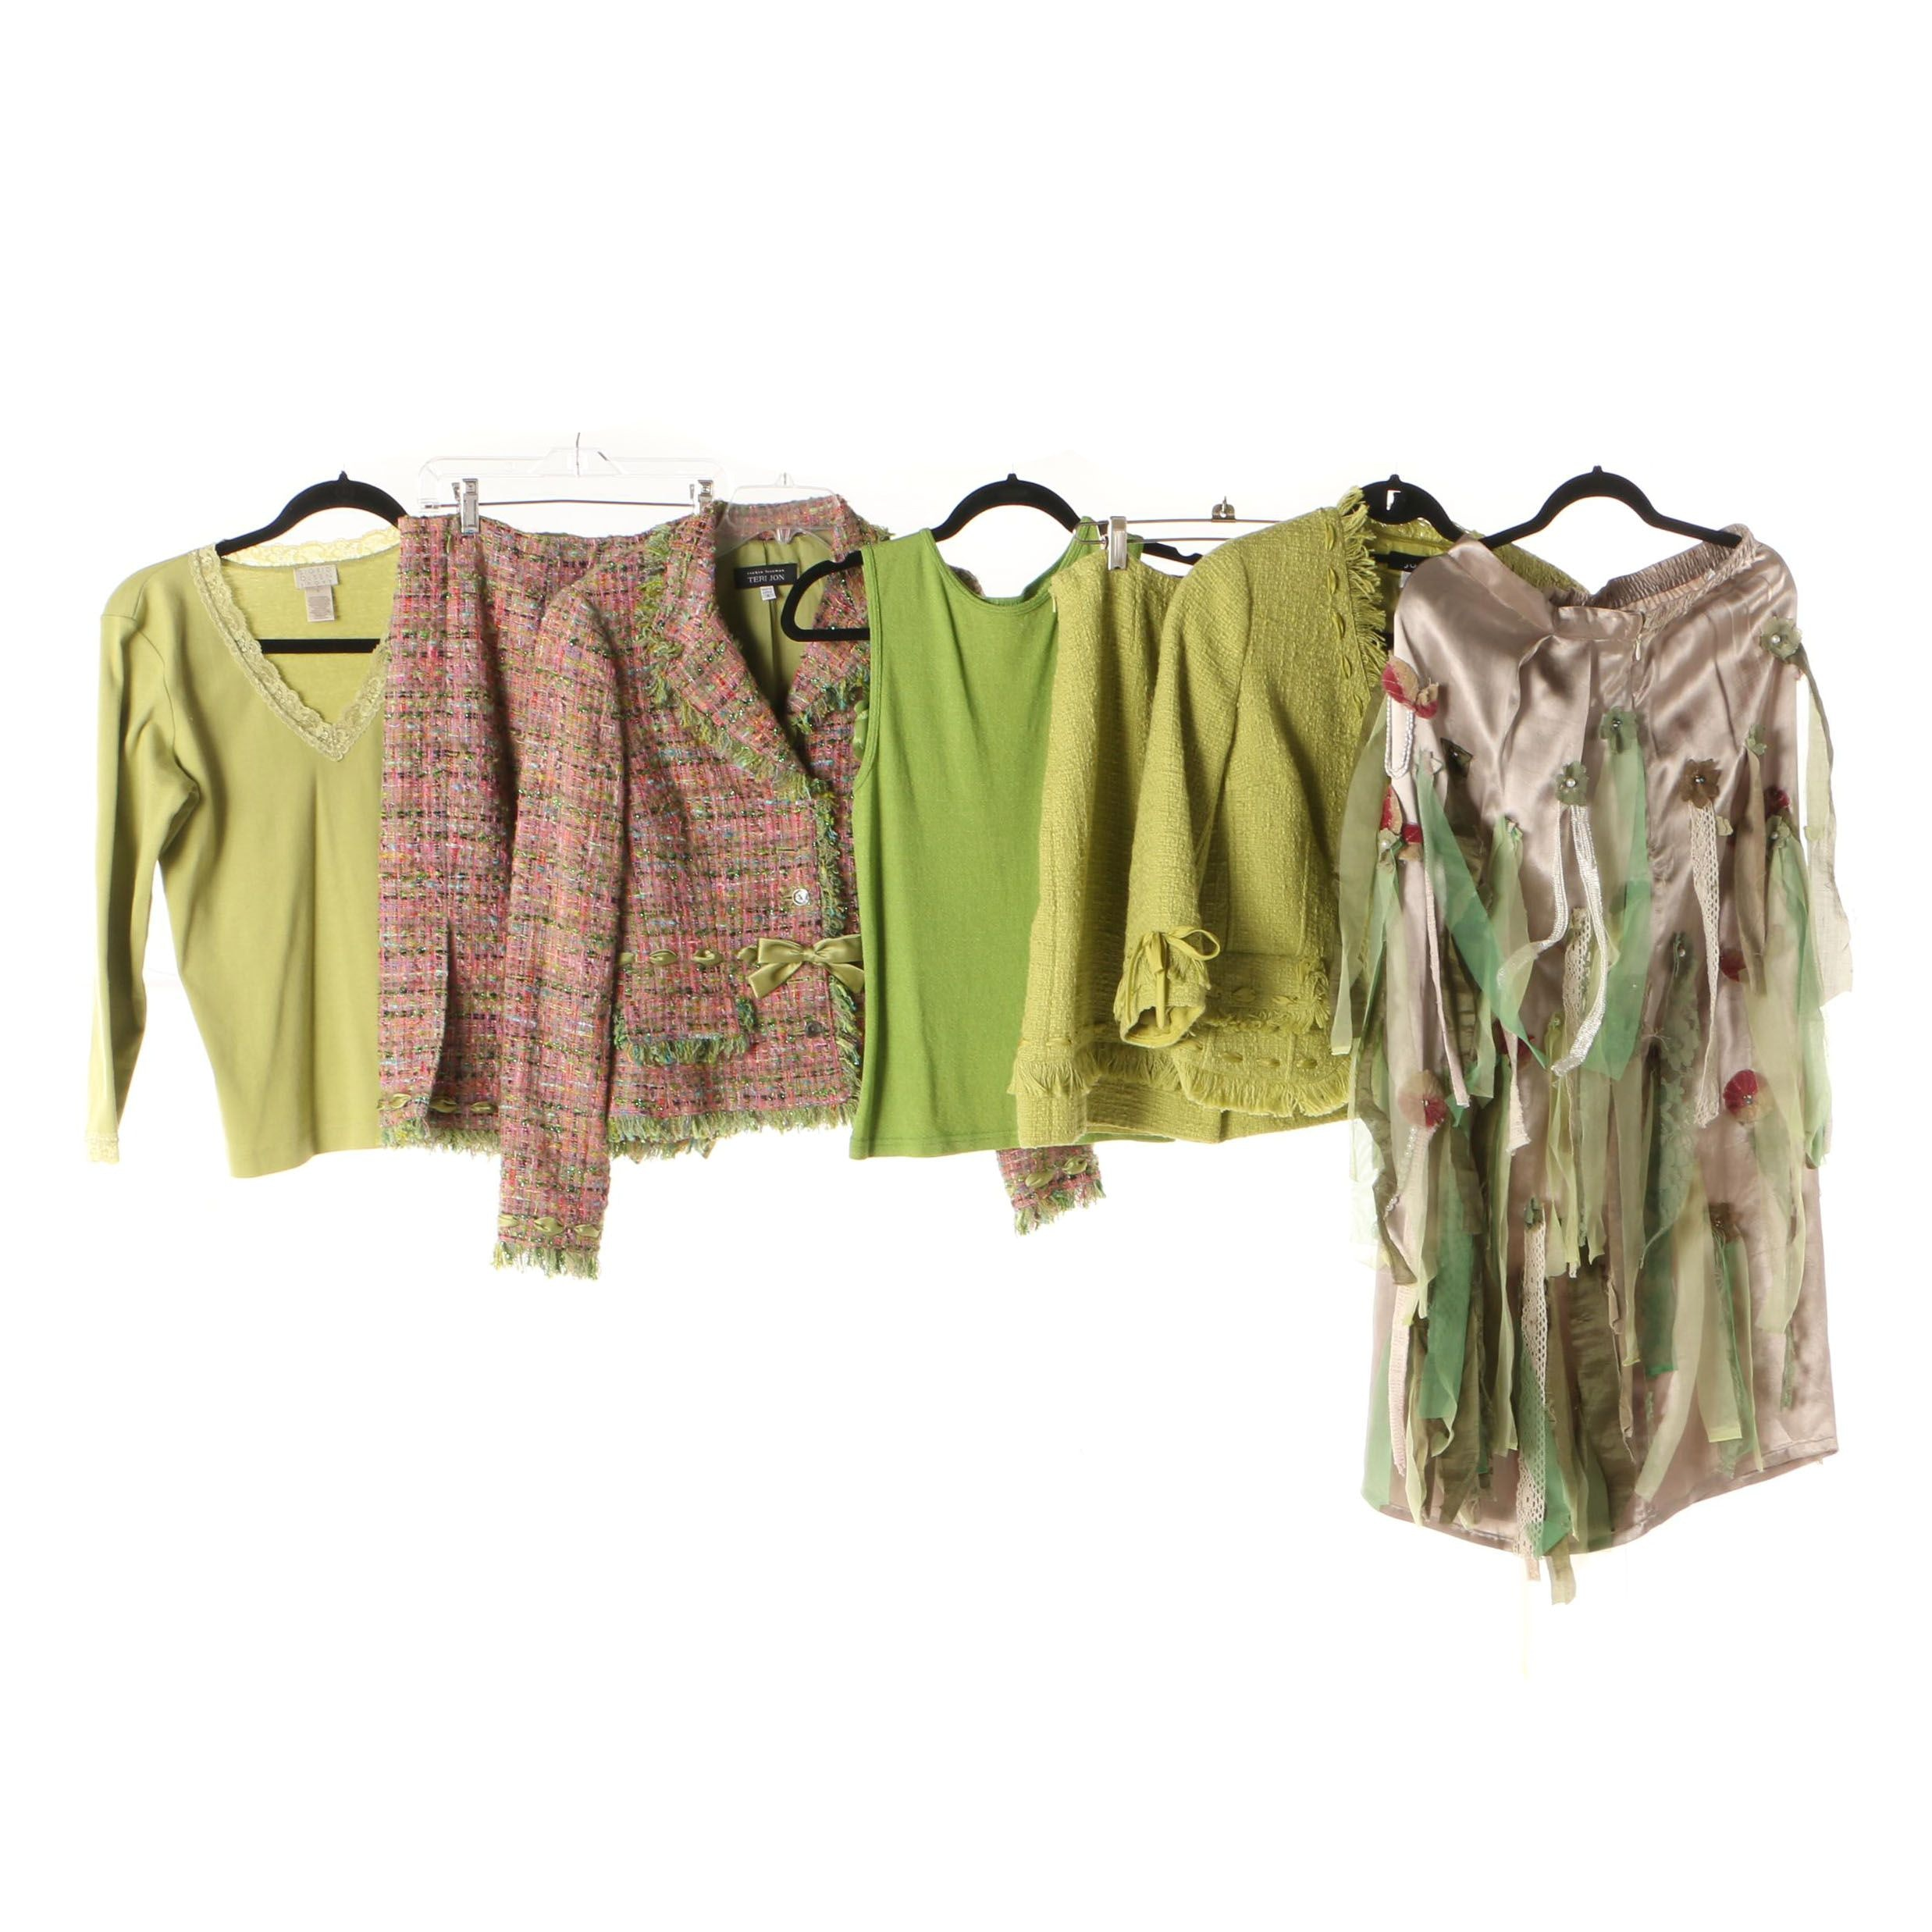 Women's Tops, Skirt, and Skirt Suits Including Michael Stars and Sigrid Olsen